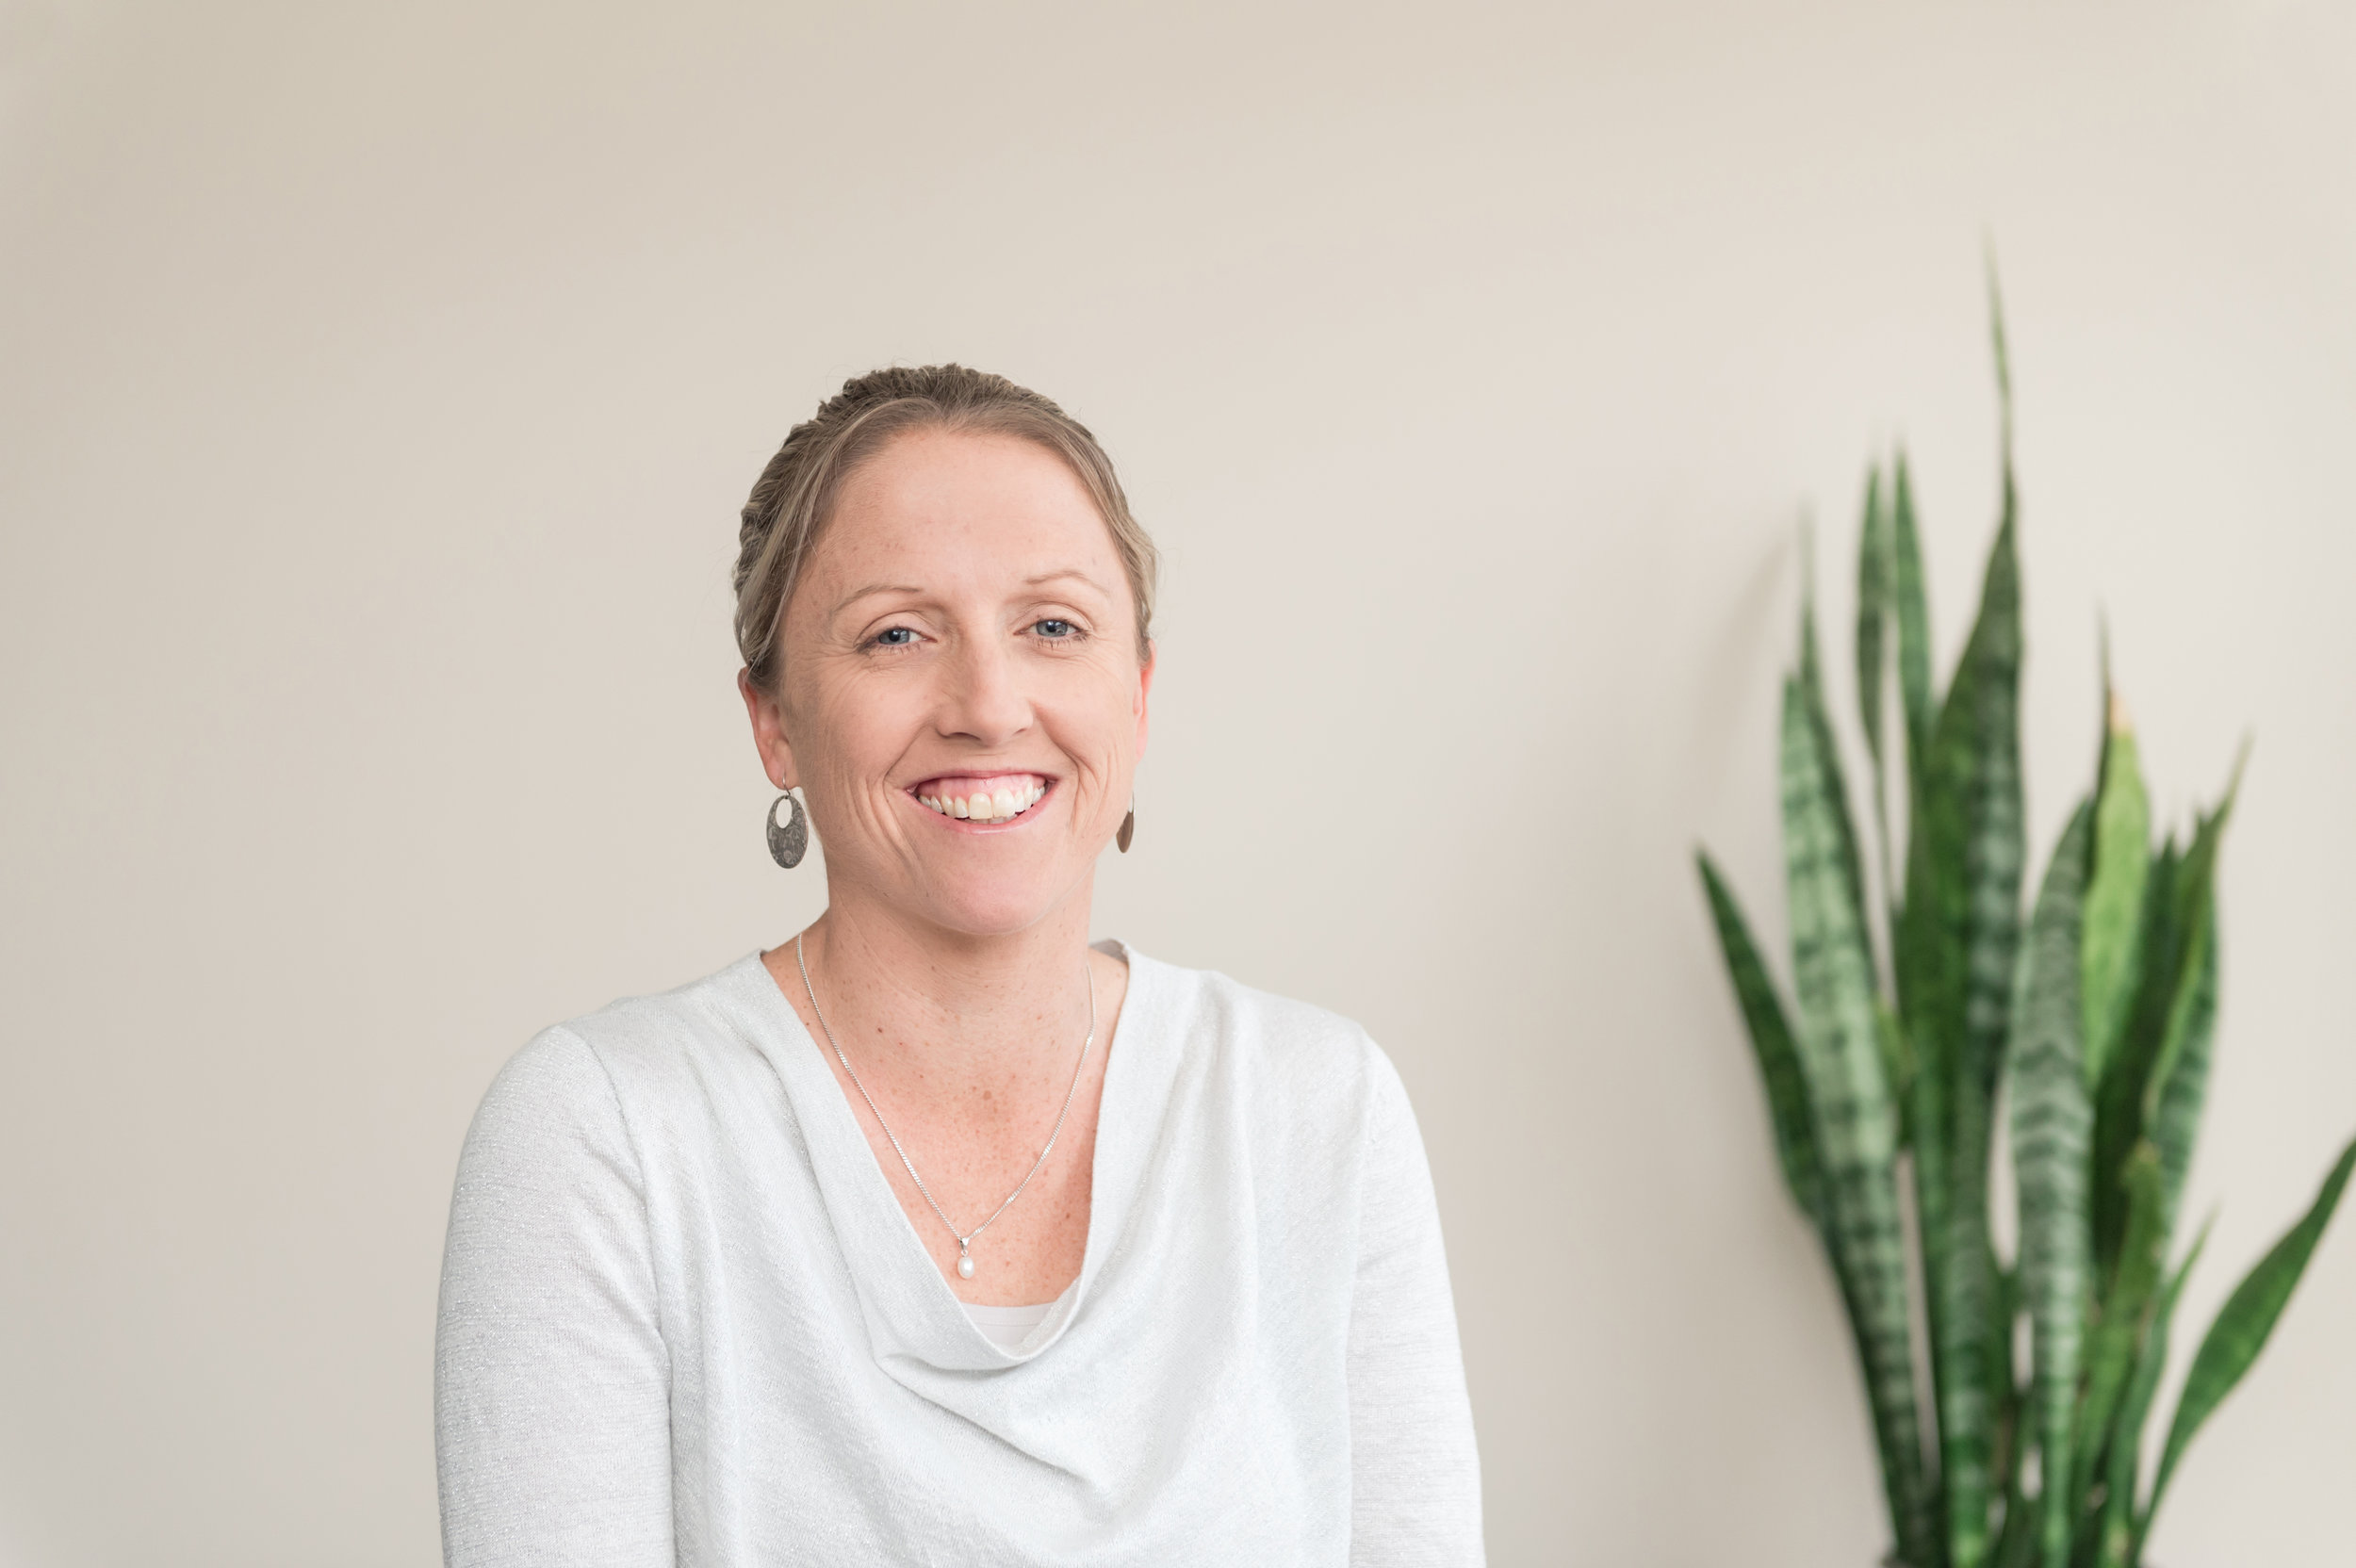 ALEX SLEEP Bookkeeper / Administration - Ceduna   Alex joined Letcher Moroney in July 2018 as a part of the acquisition of Phill Stevens & Associates. Alex grew up on the farm and previously worked for Phill Stevens for 5 years after completing year 12. She then worked for Ceduna Council and has experience in various admin roles from HR, Accounts, Personal Assistant and now in Bookkeeping.